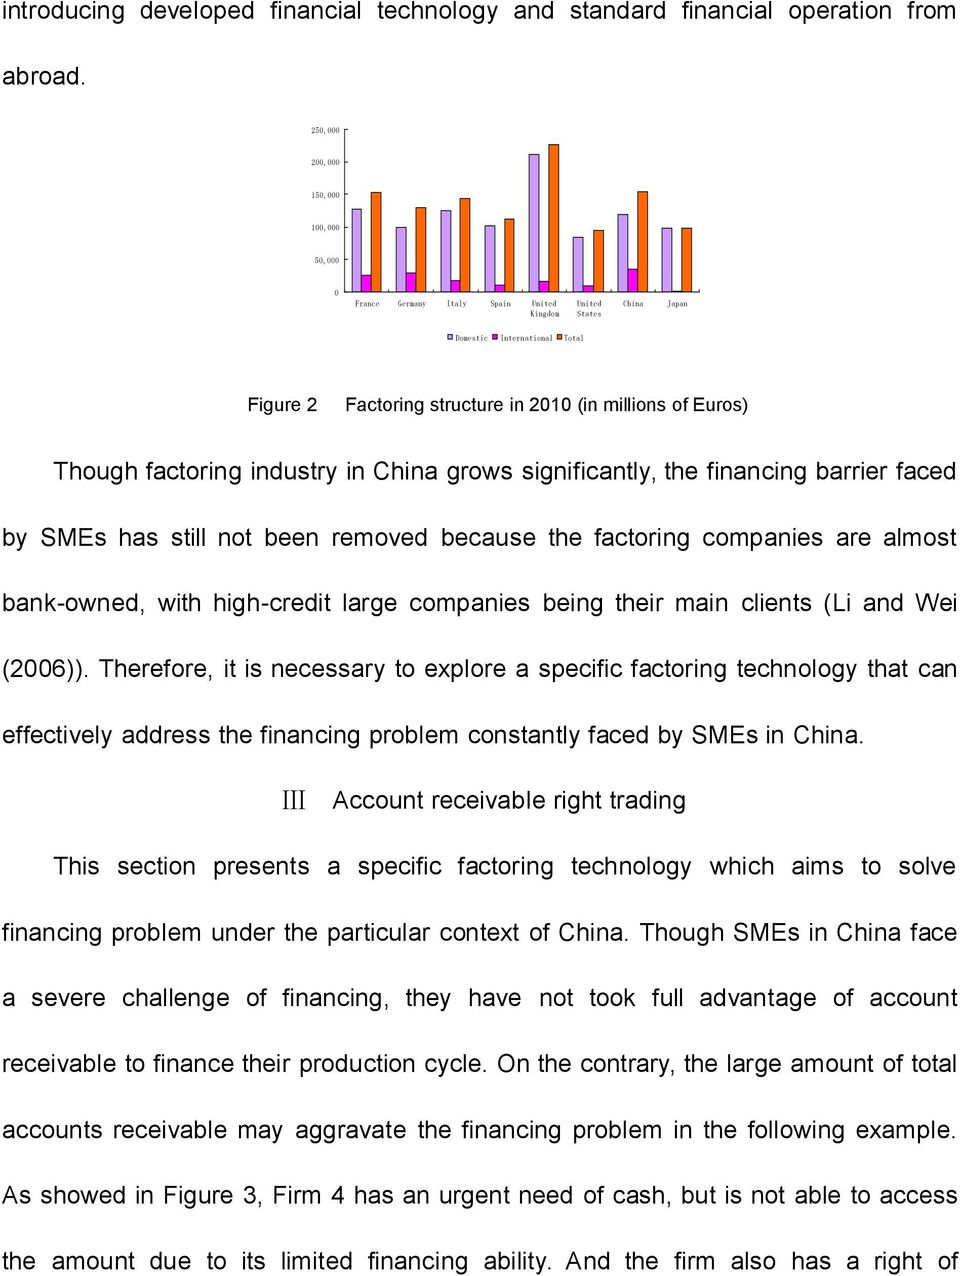 Though factoring industry in China grows significantly, the financing barrier faced by SMEs has still not been removed because the factoring companies are almost bank-owned, with high-credit large